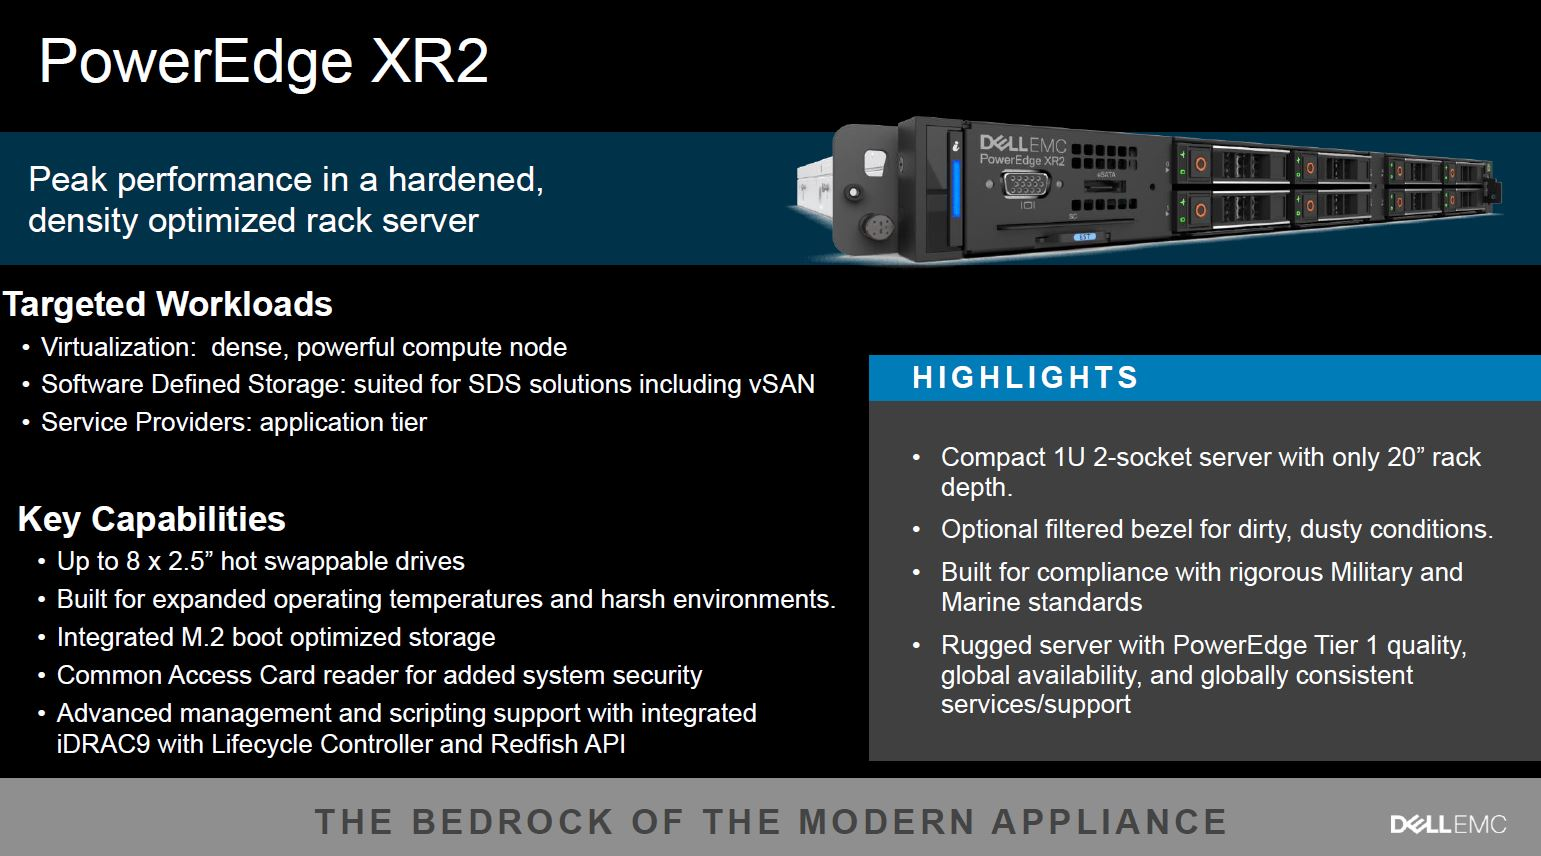 Dell EMC PowerEdge XR2 Overview